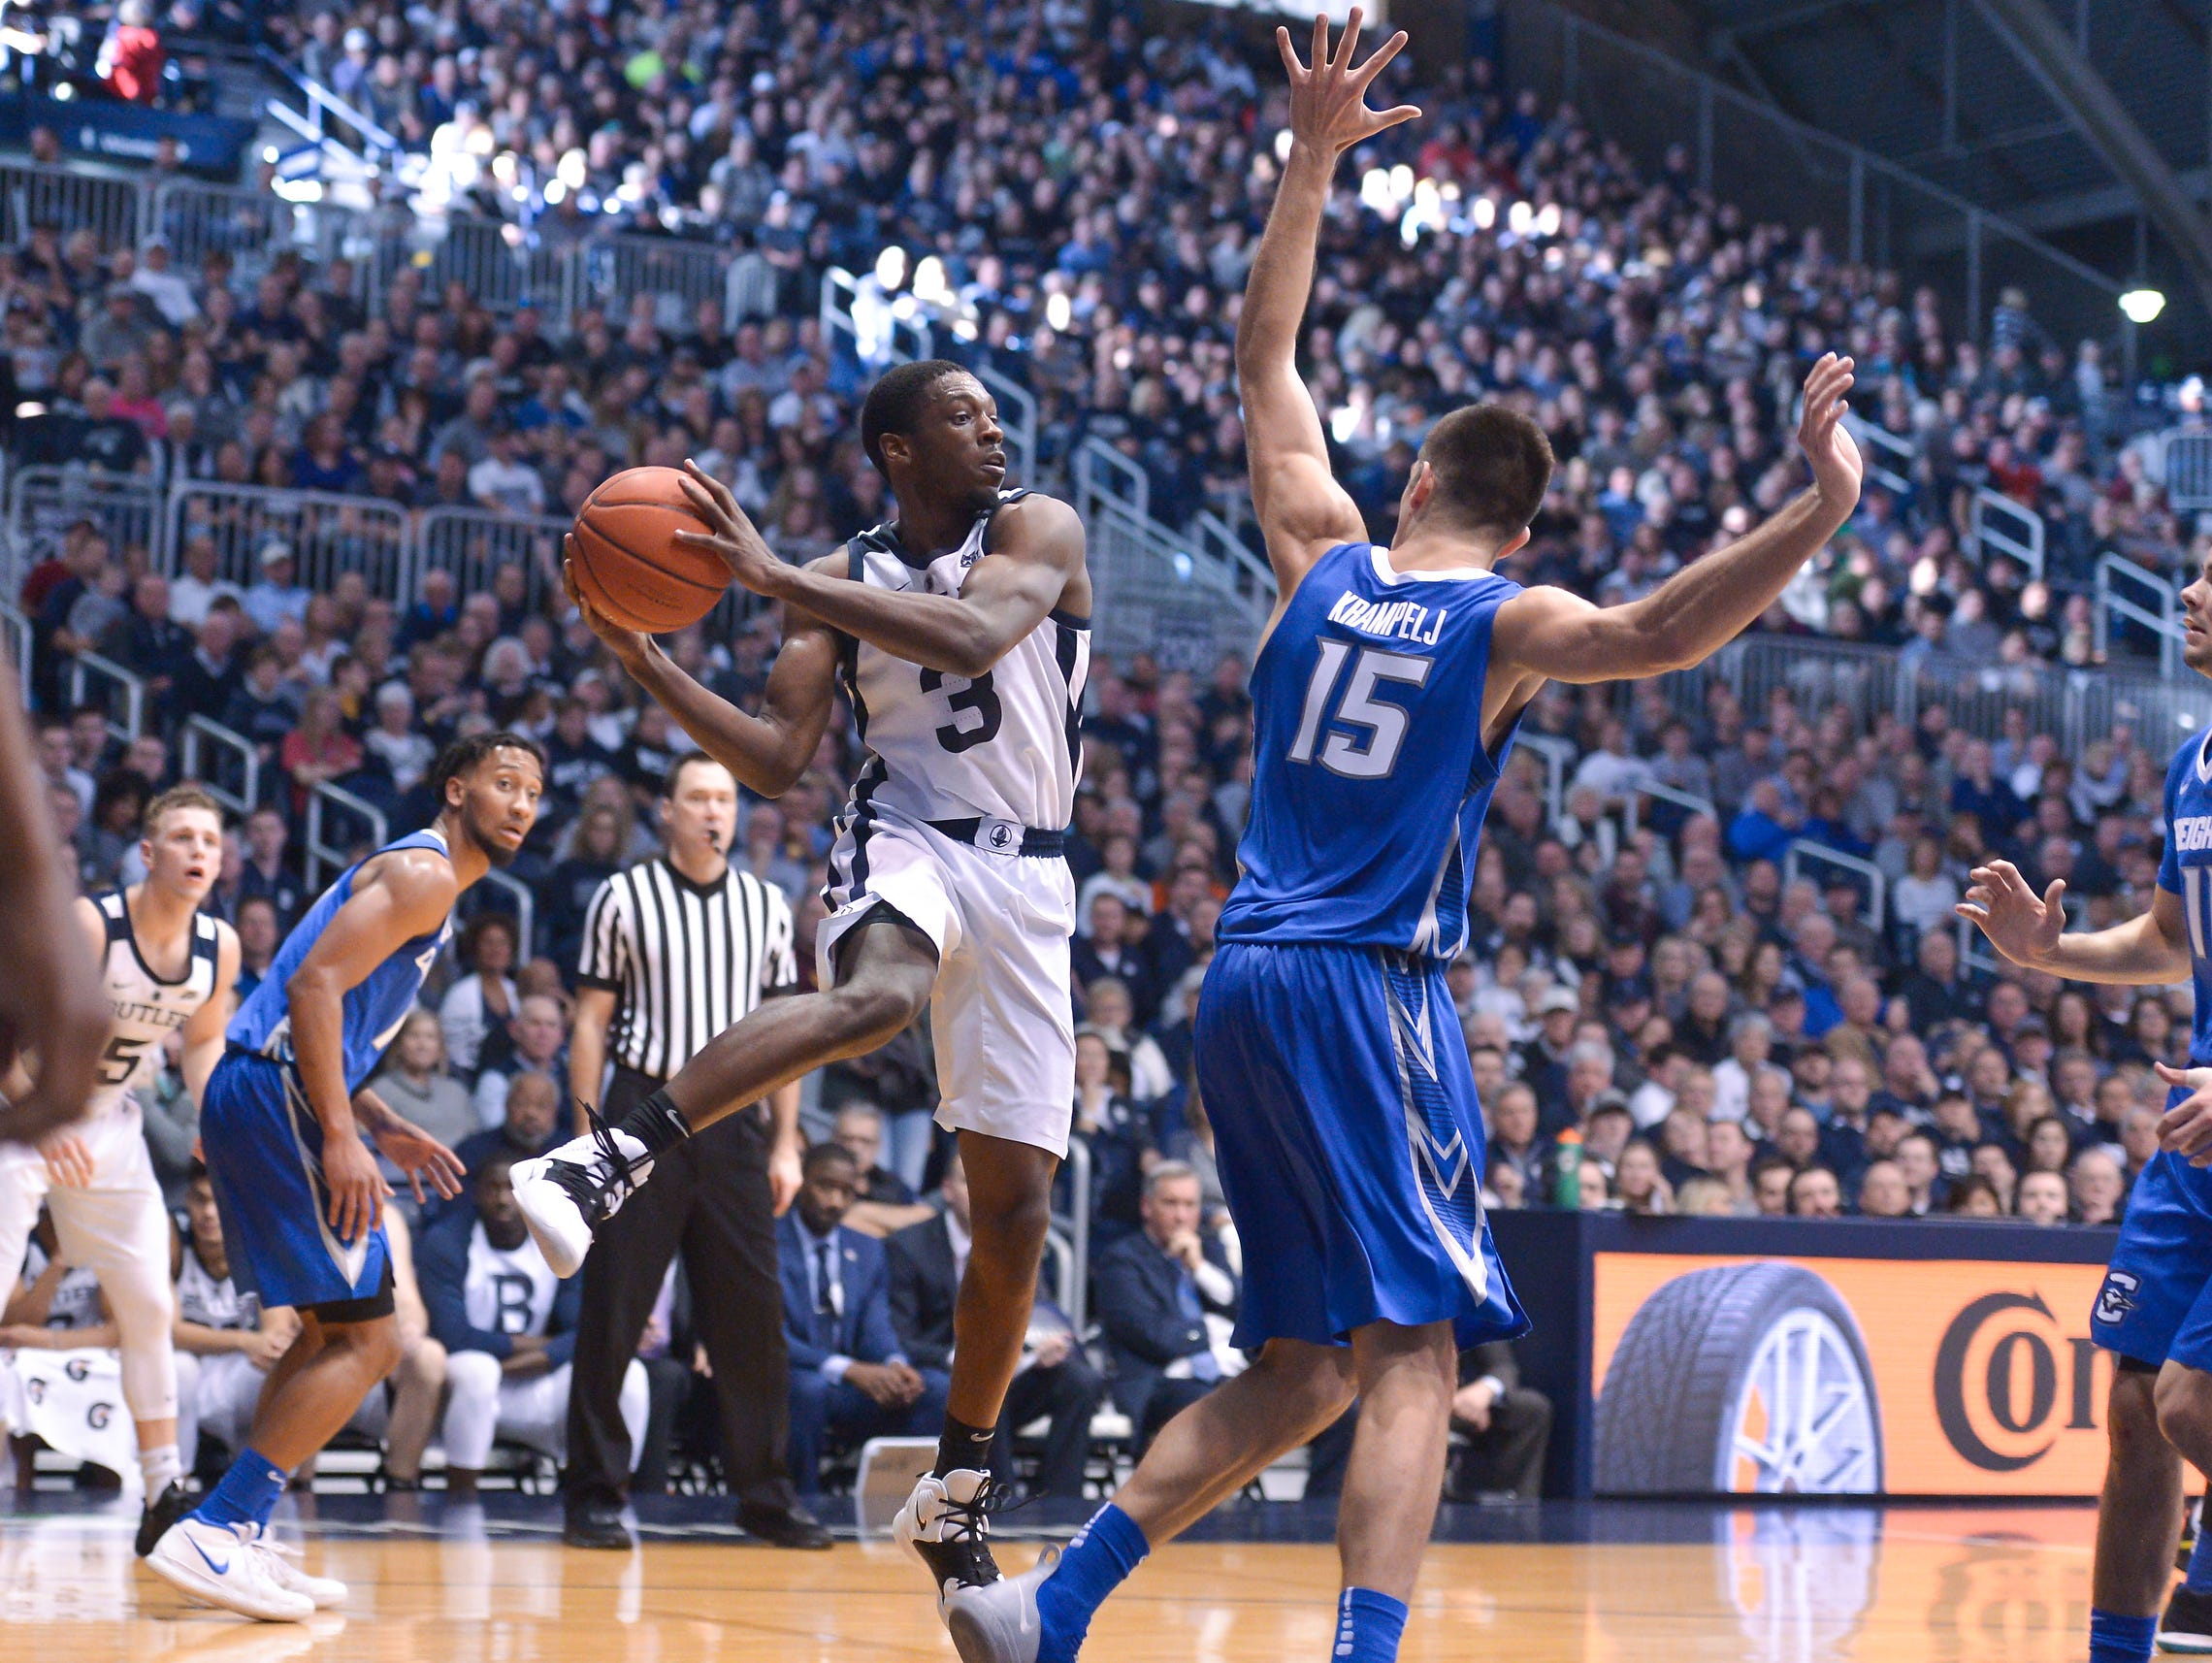 Butler Bulldogs guard Kamar Baldwin (3) passes the ball against Creighton Bluejays forward Martin Krampelj (15) during the second half of game action between Butler University and Creighton University, at Hinkle Fieldhouse in Indianapolis, Indiana on Saturday, Jan. 5, 2019. The Butler Bulldogs defeated the Creighton Bluejays 84-69.